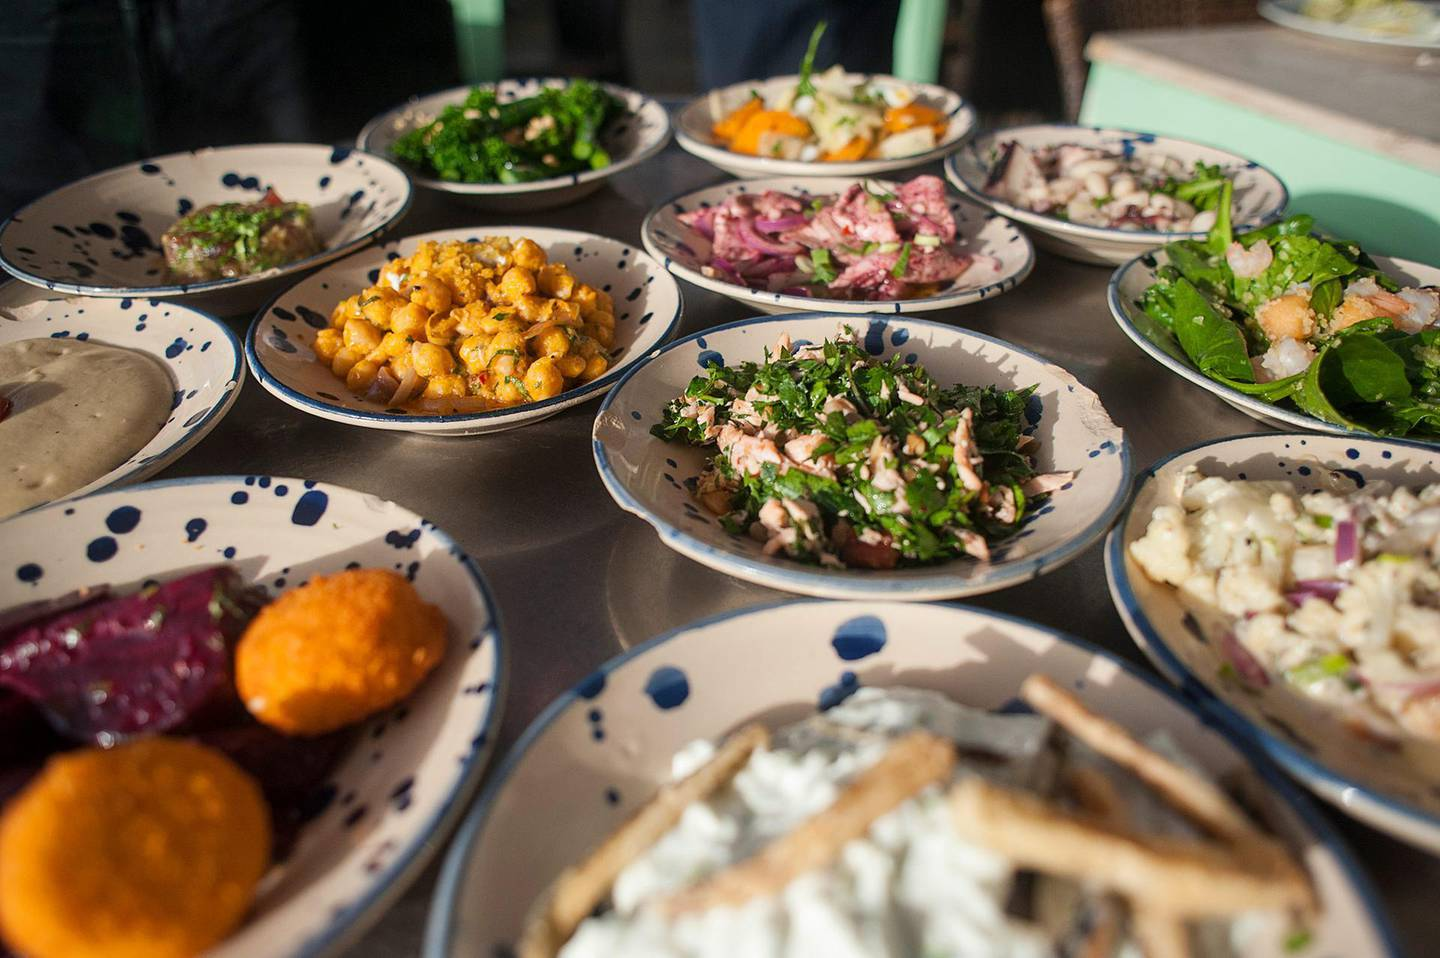 Dishes of cold meze are served at a restaurant in Israel. Photographer: Geraldine Hope Ghelli/Bloomberg